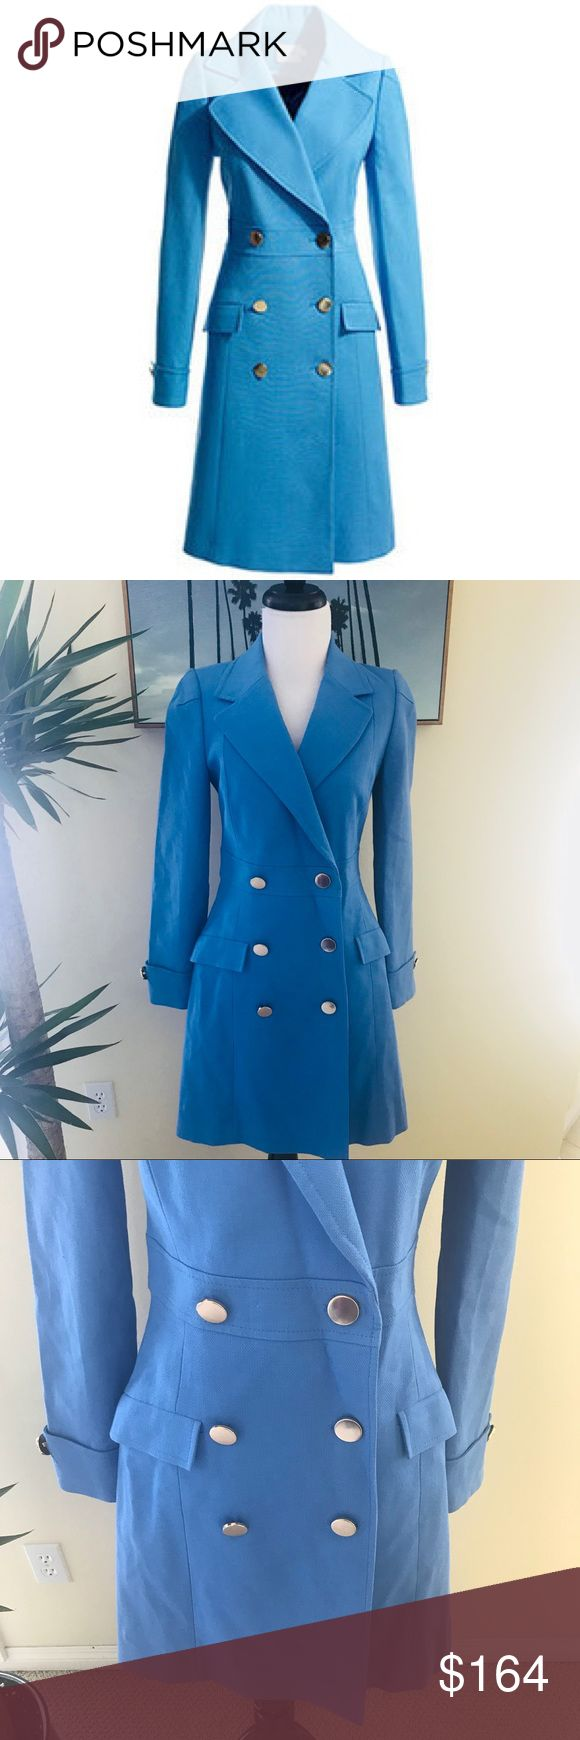 """{Reiss} Ophelia Blue Tailored Cotton Coat Reiss Ophelia Blue Tailored Cotton Coat. Button up front. Front flap pockets. Lined. Foldover flaps and buttons at wrist. Size x-small. Length 36"""". Bust 34"""". Waist 29"""". Hips 36"""". Excellent preworn condition. No trades please! Reiss Jackets & Coats Pea Coats"""